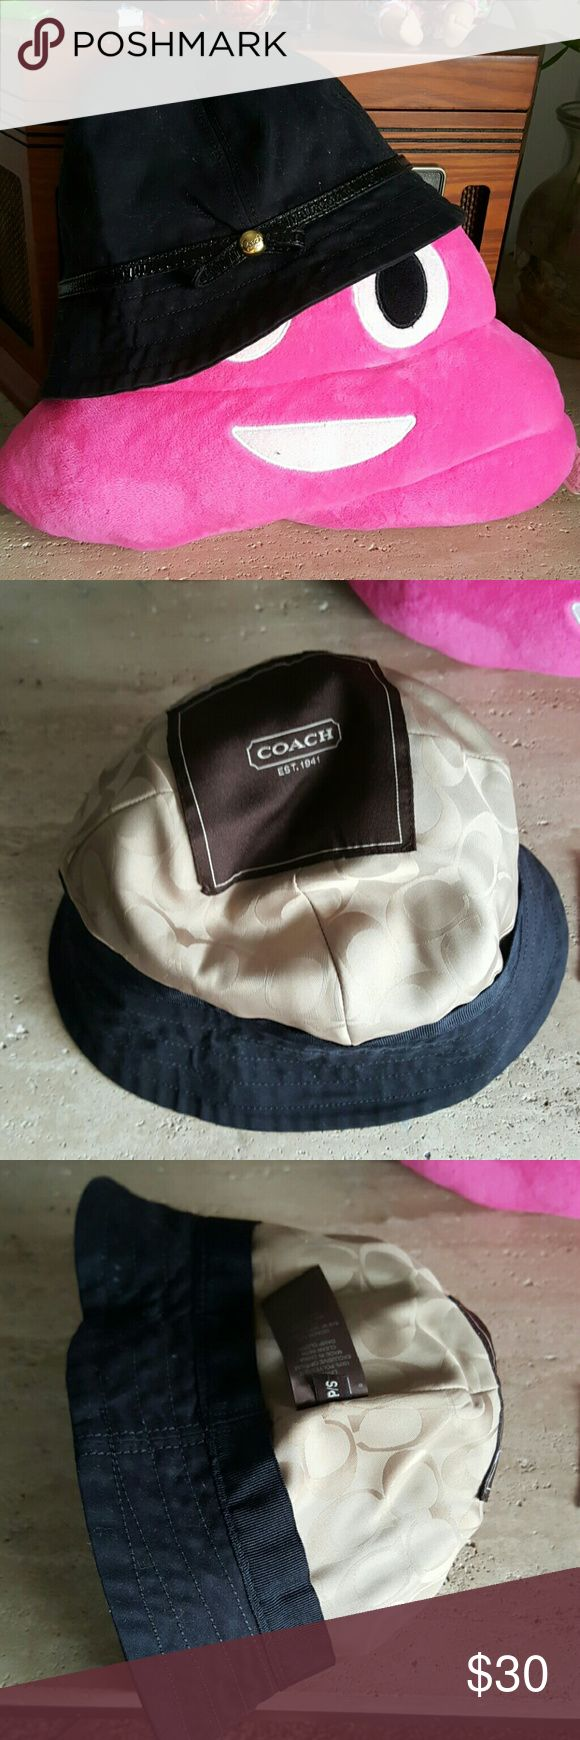 Coach hat Excellent used condition  This must have item needs to be cleaned up Coach Accessories Hats